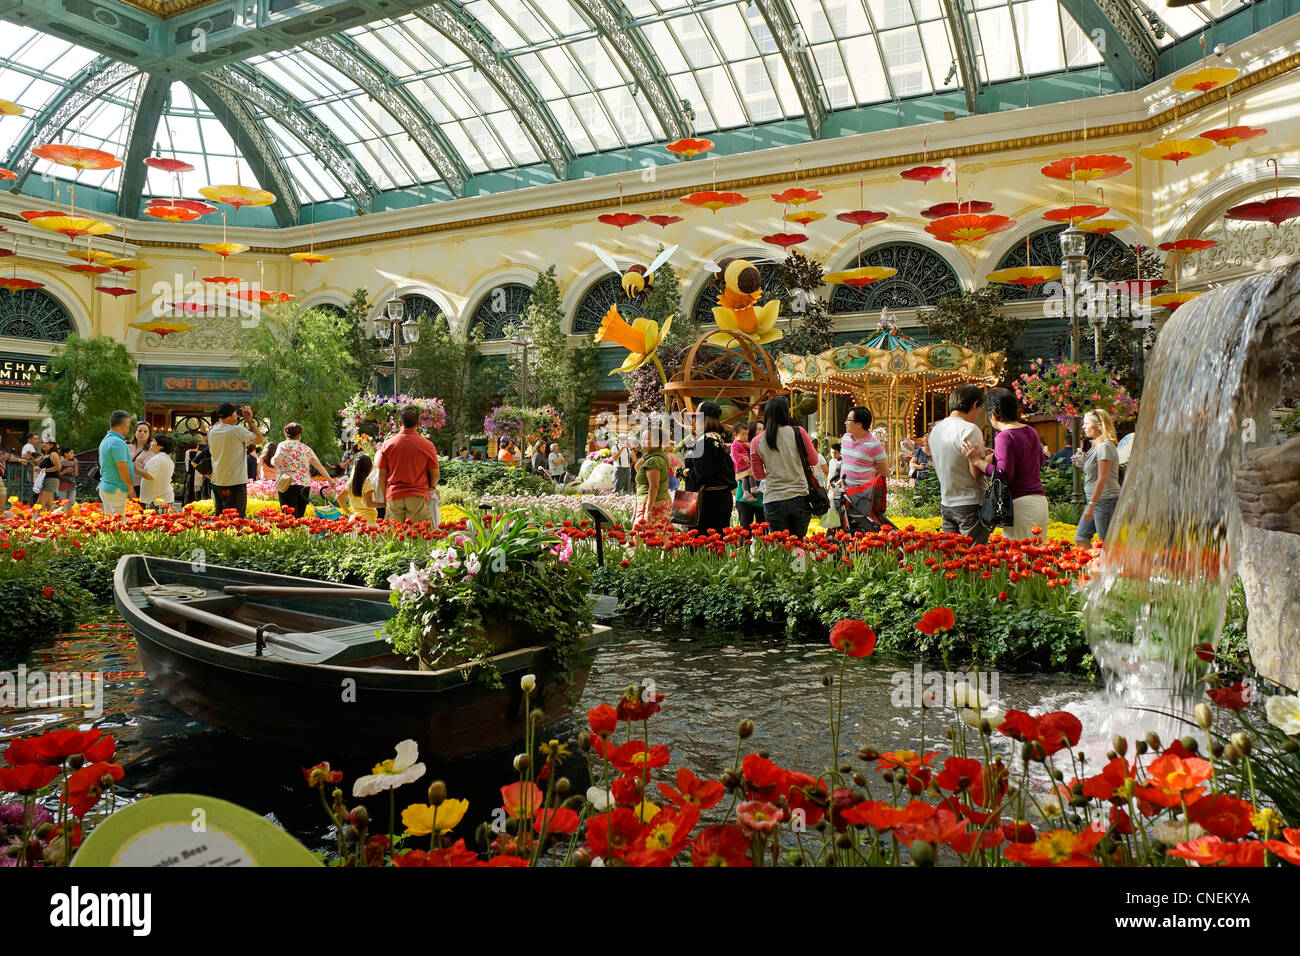 Bellagio Hotel and Casino, Gardens, Conservatory, Las Vegas, Nevada ...